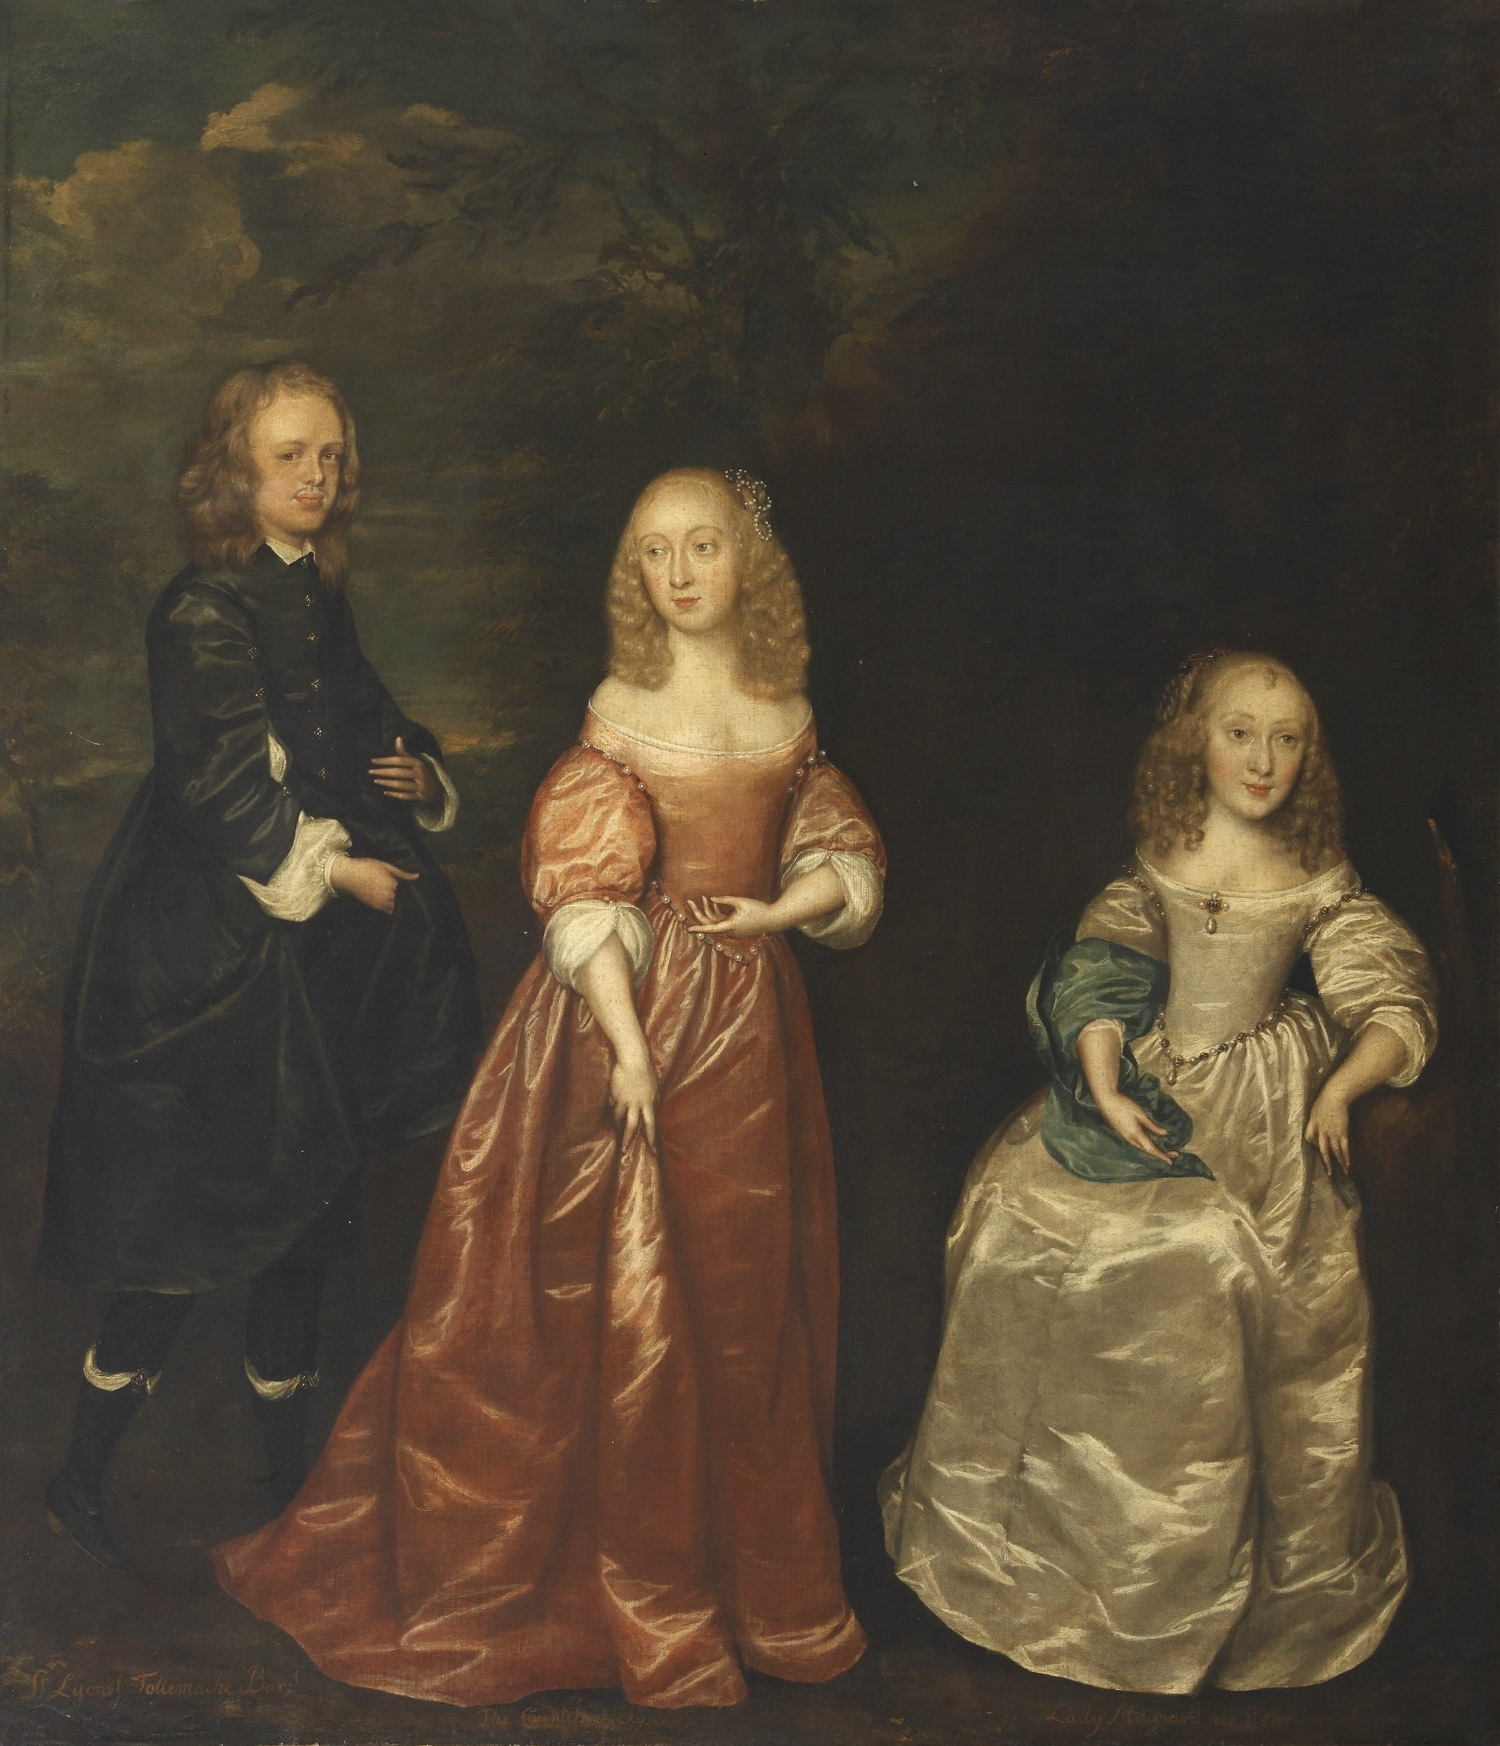 Elizabeth Murray, Countess of Dysart, with her First Husband, Sir Lionel Tollemache, and her Sister, attributed to Joan Palmer ©National Trust Images